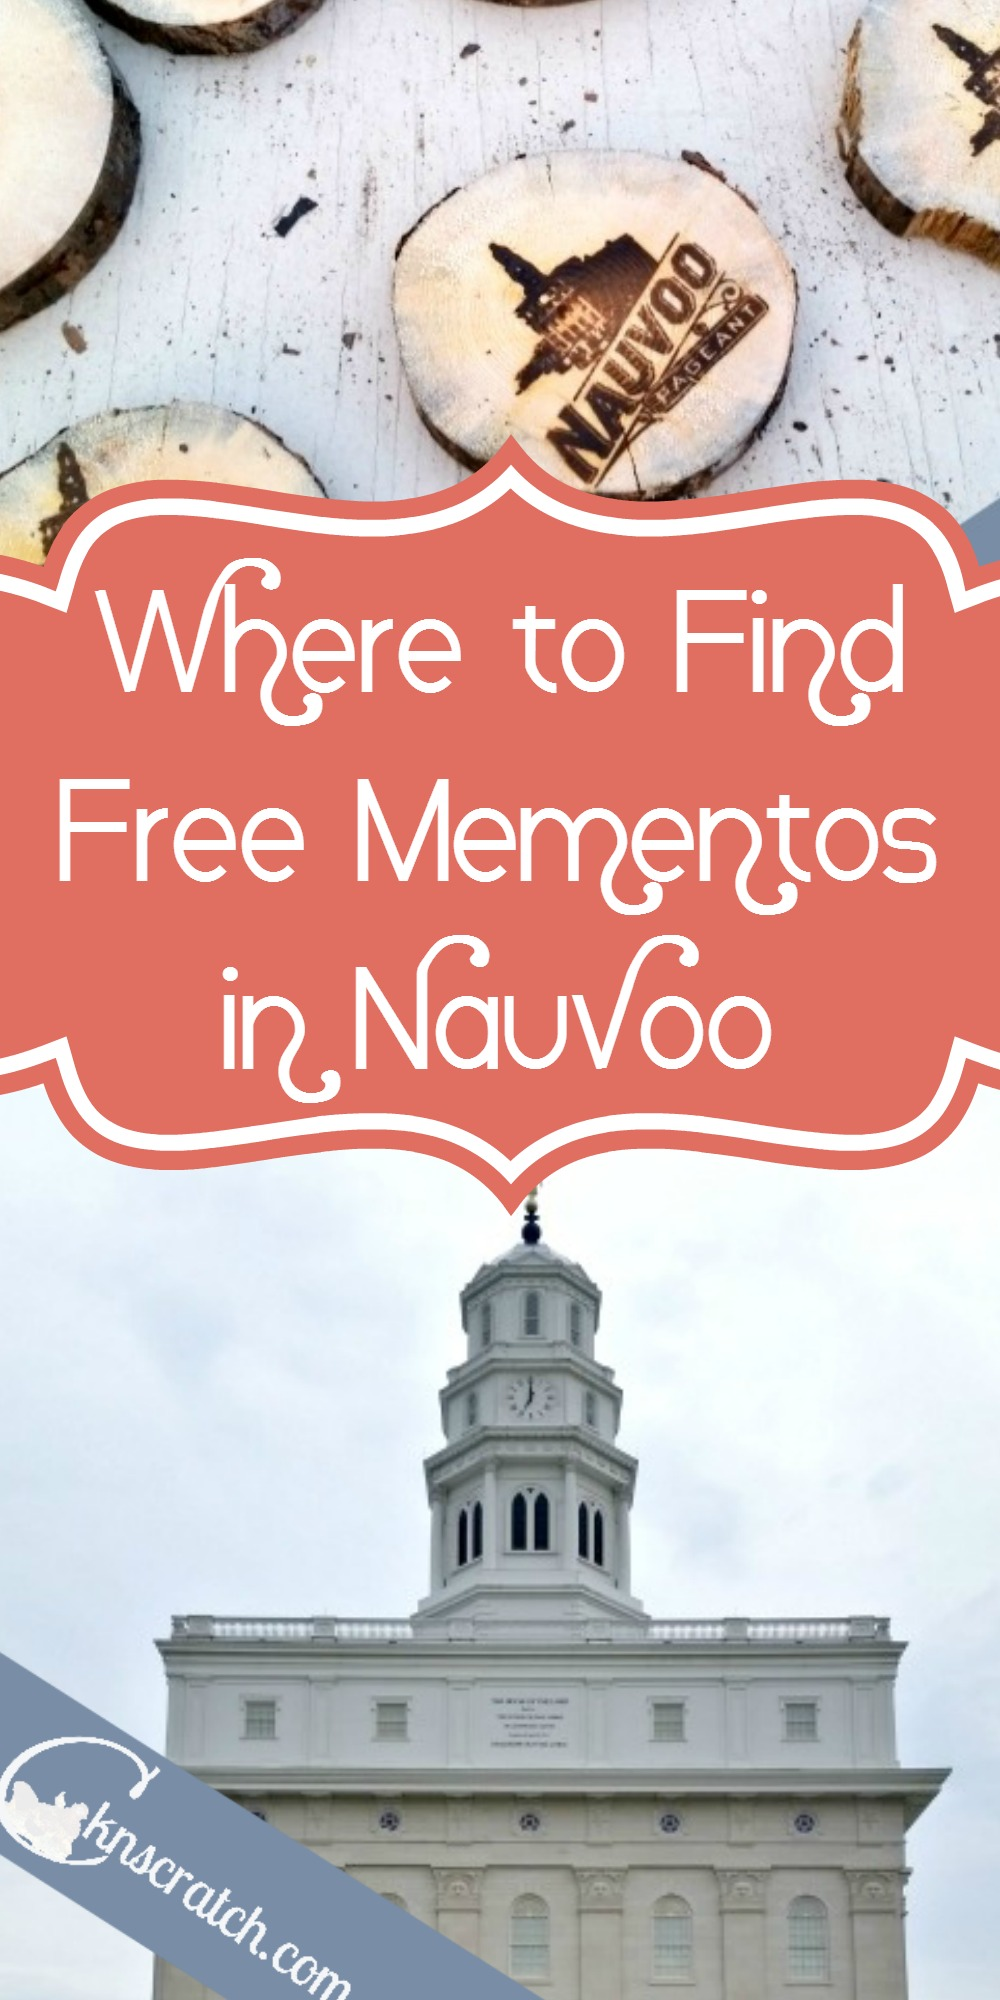 Love this! I definitely won't be missing these sites- where to find free mementos in Nauvoo